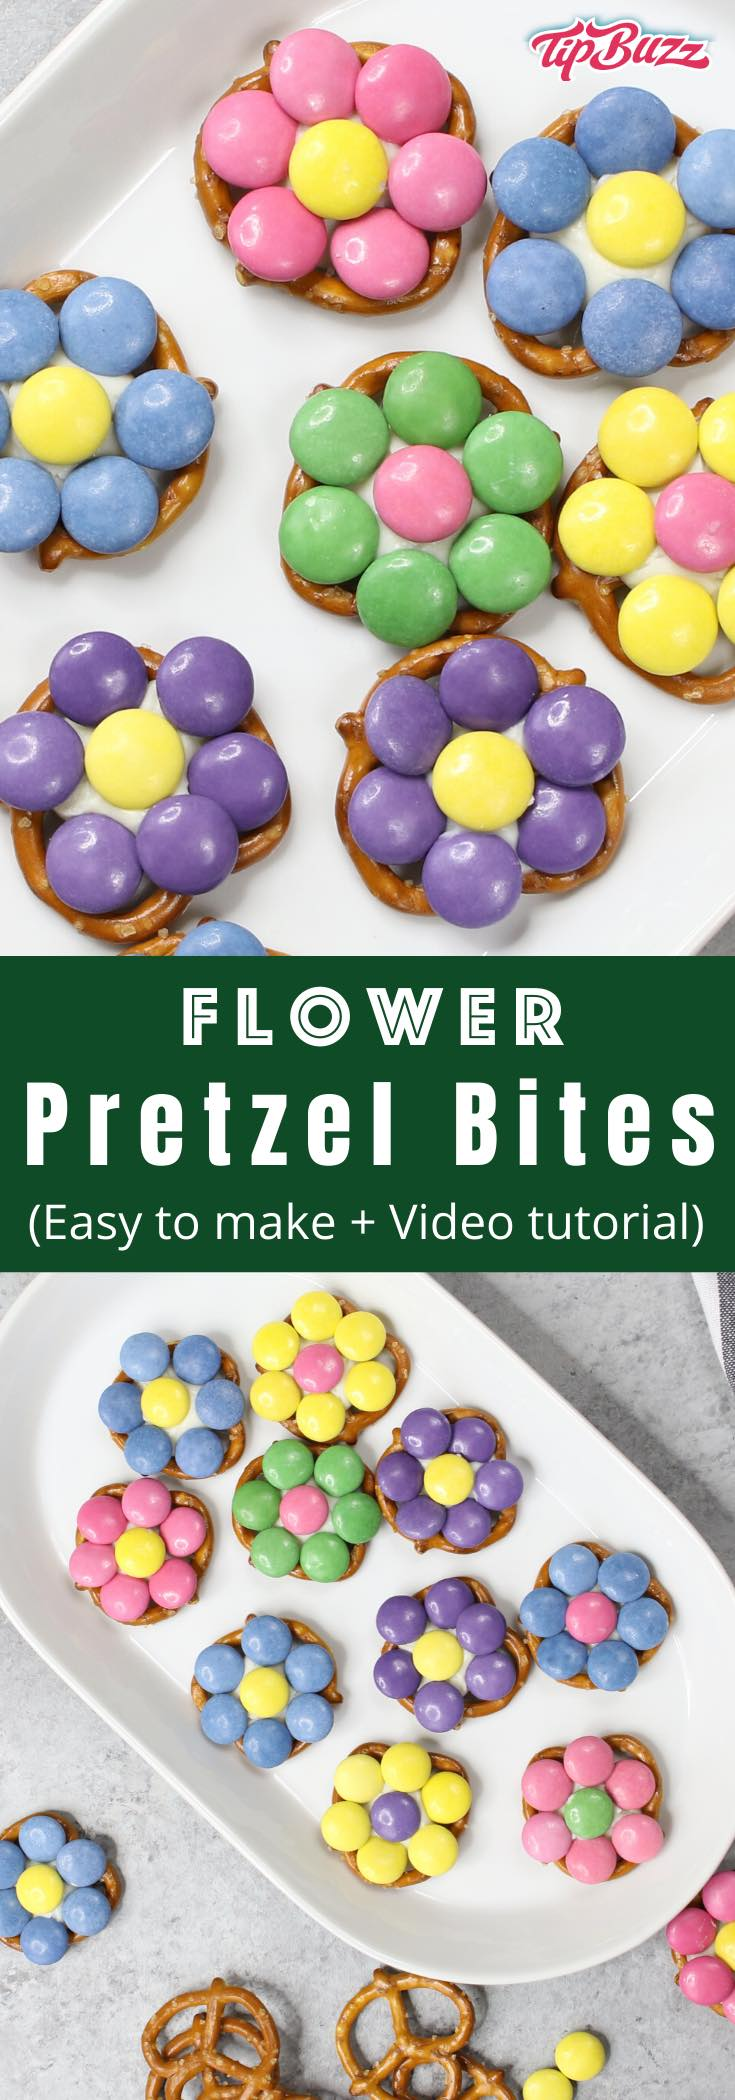 These Easter Pretzel Flower Bites are perfect treats and DIY gifts to celebrate the arrival of spring! All you need are some pretzels, candy melts and pastel M&Ms. These easy treats are ready in just 10 minutes! #flowerPretzelBites